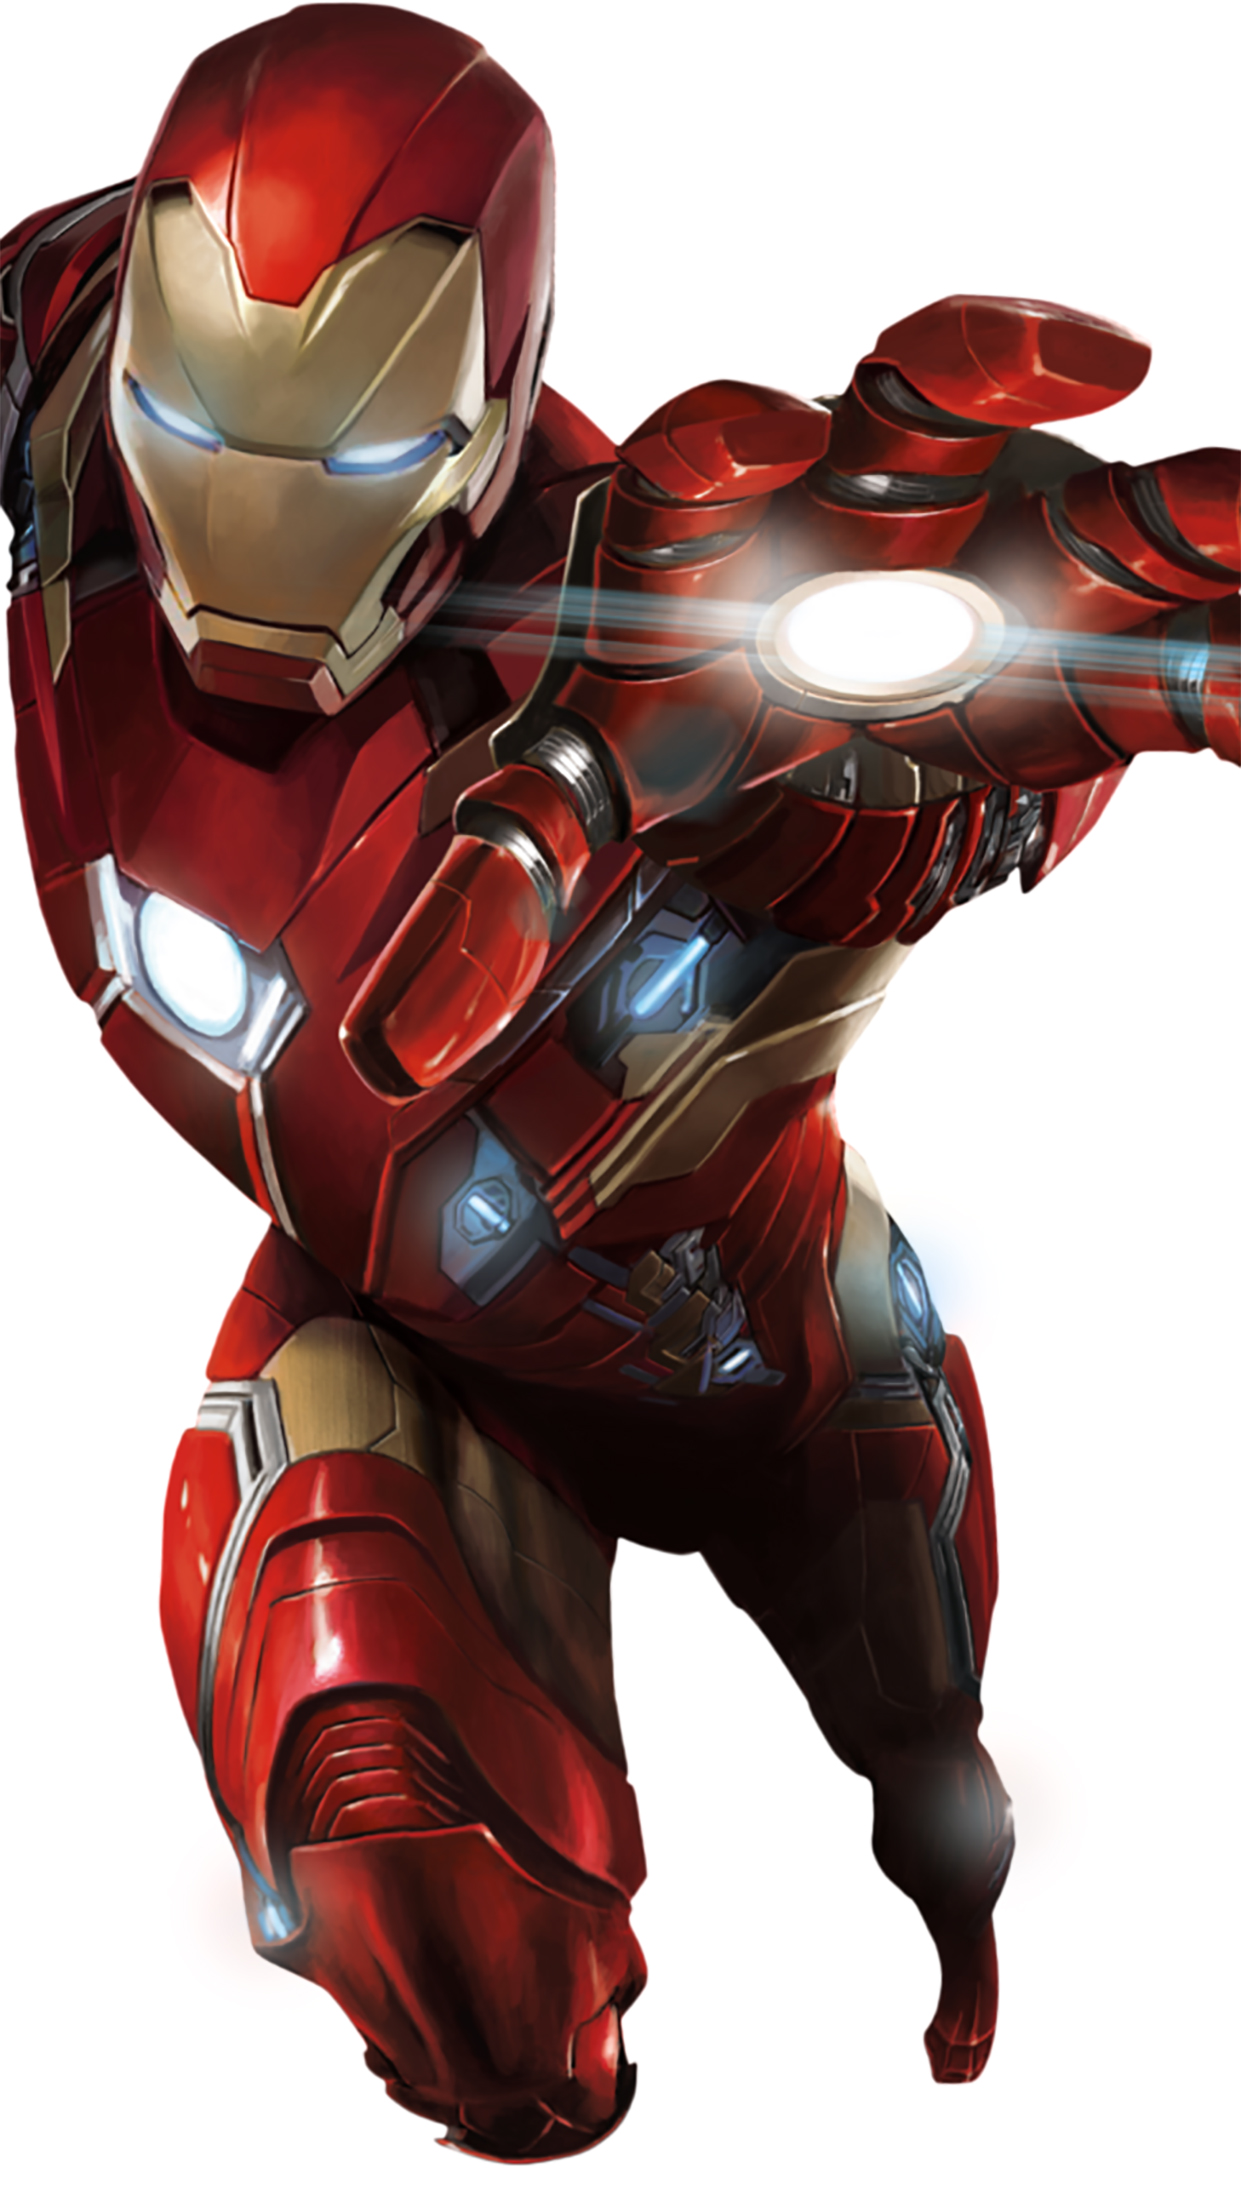 Iron Man Flying 3Wallpapers iPhone Parallax Les 3Wallpapers iPhone du jour (20/02/2017)